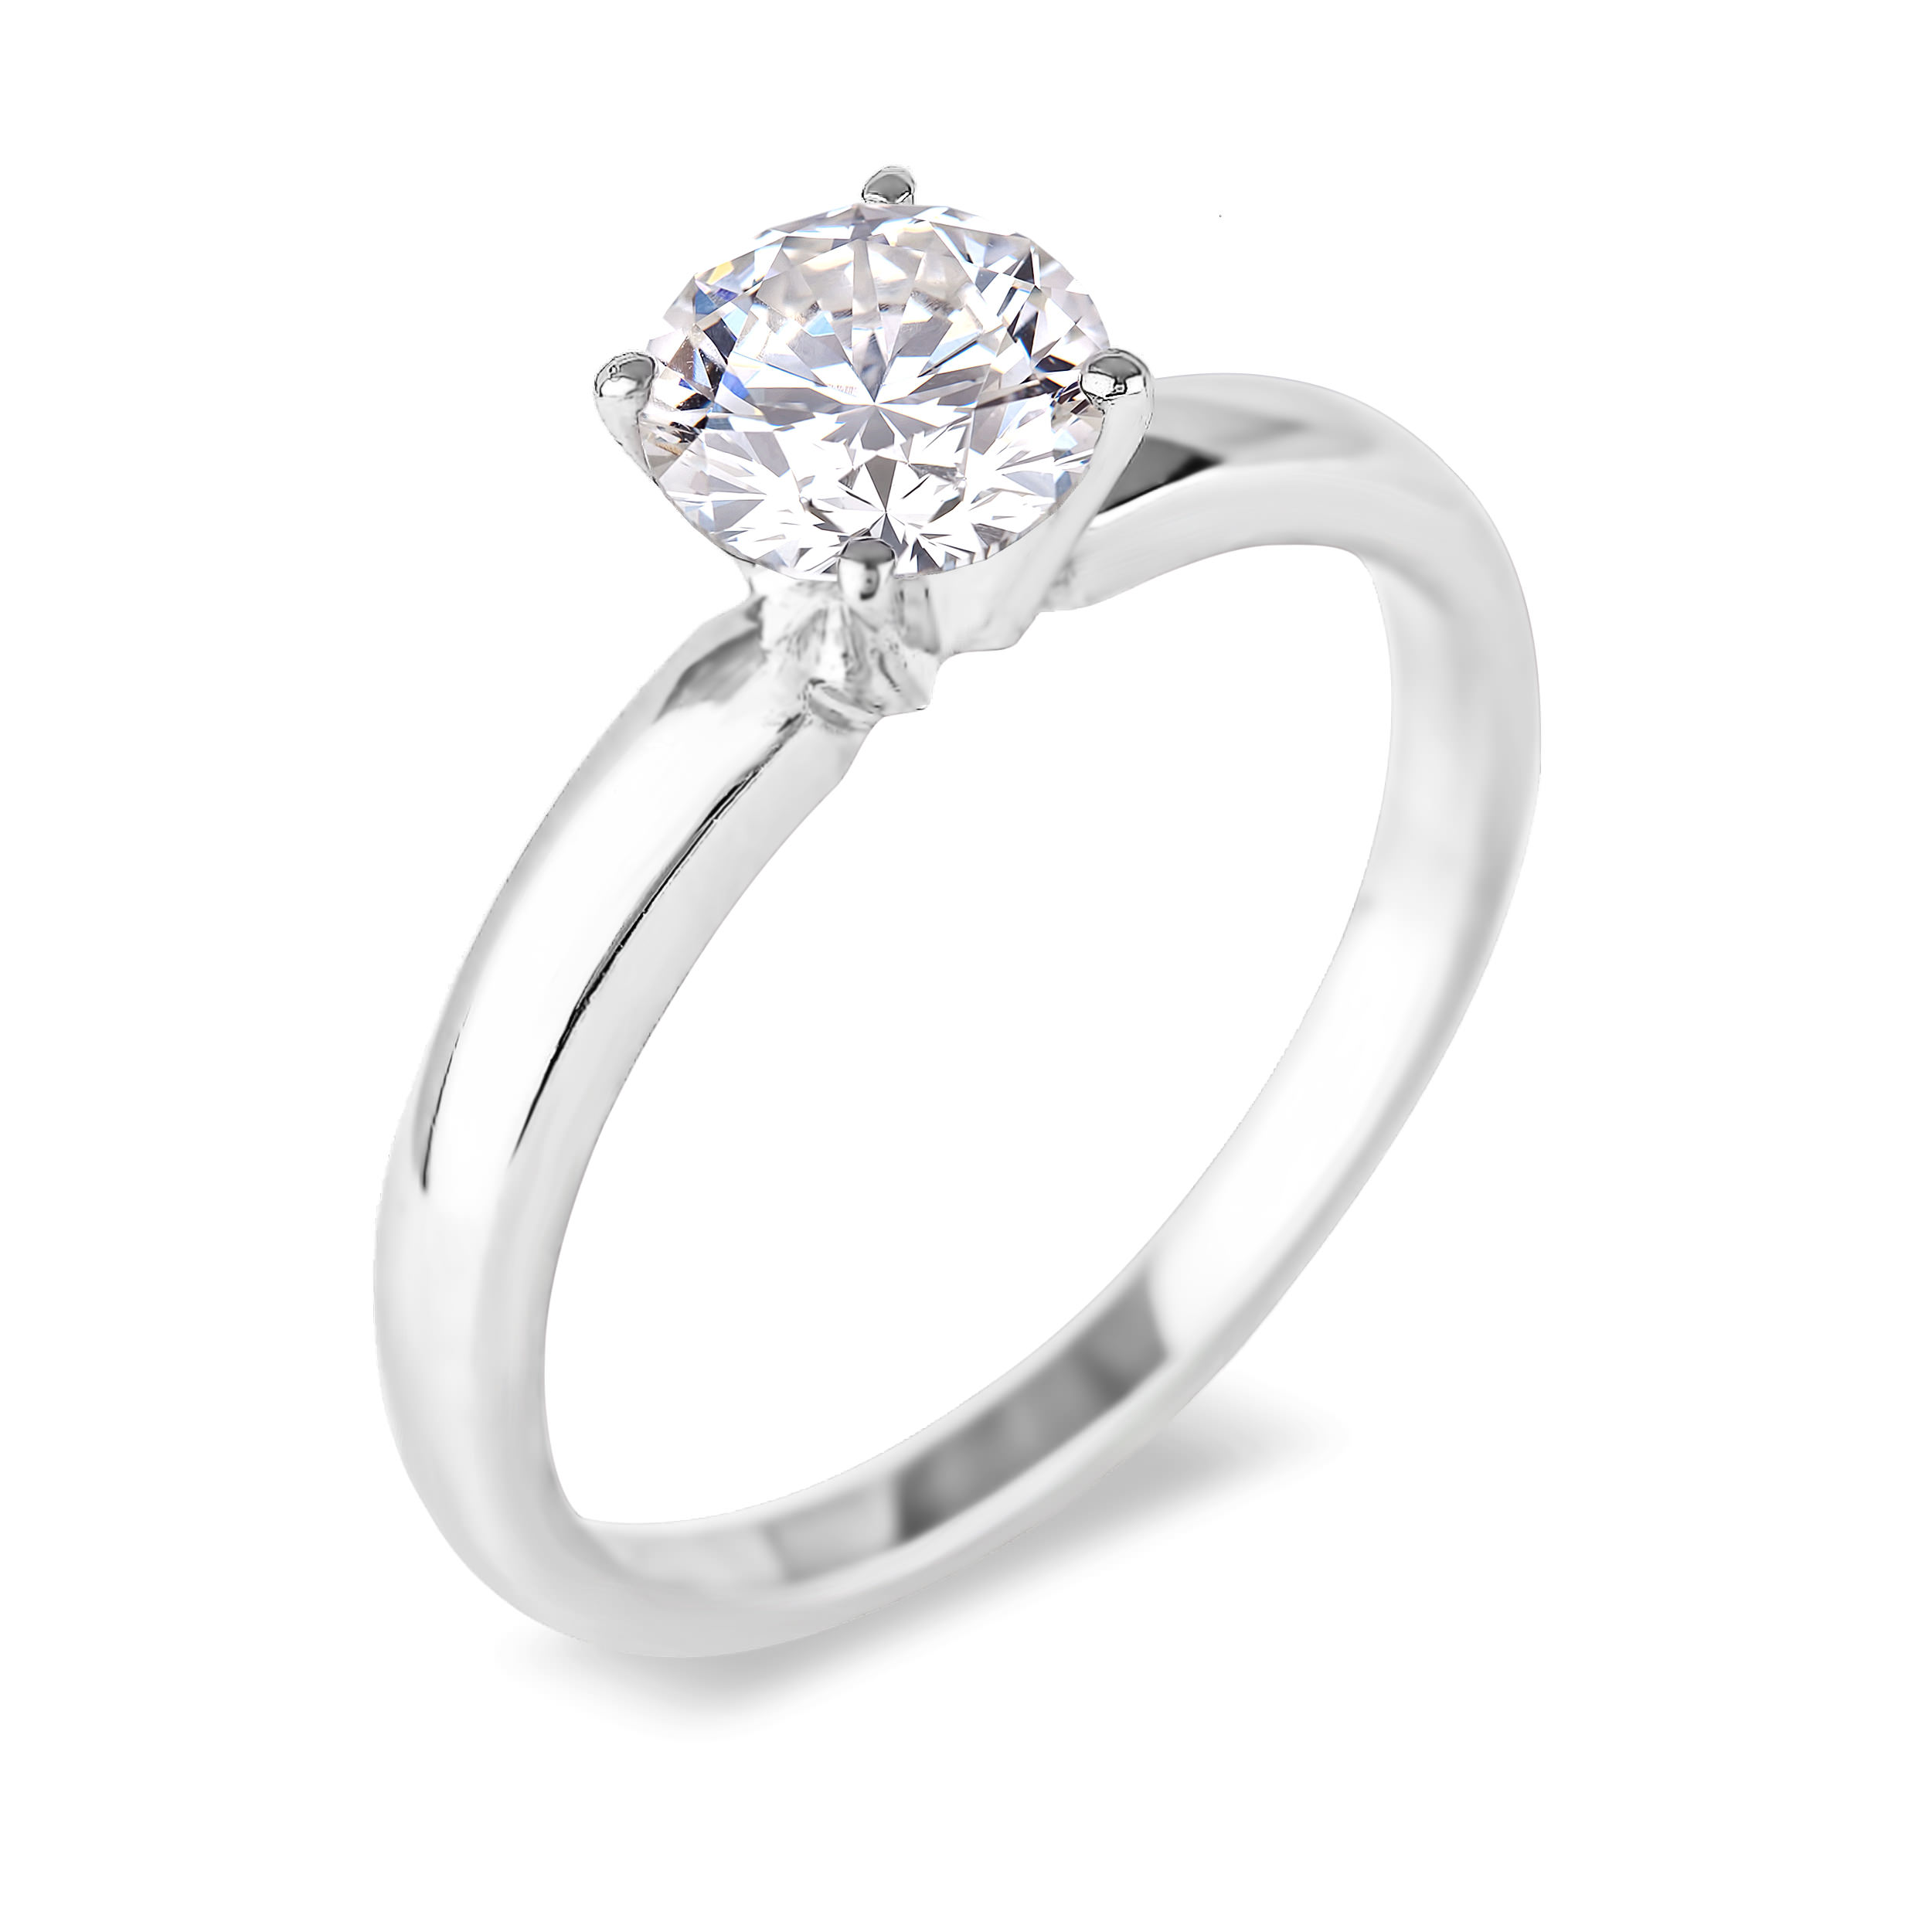 Diamond Solitaire Rings SGR516 (Rings)